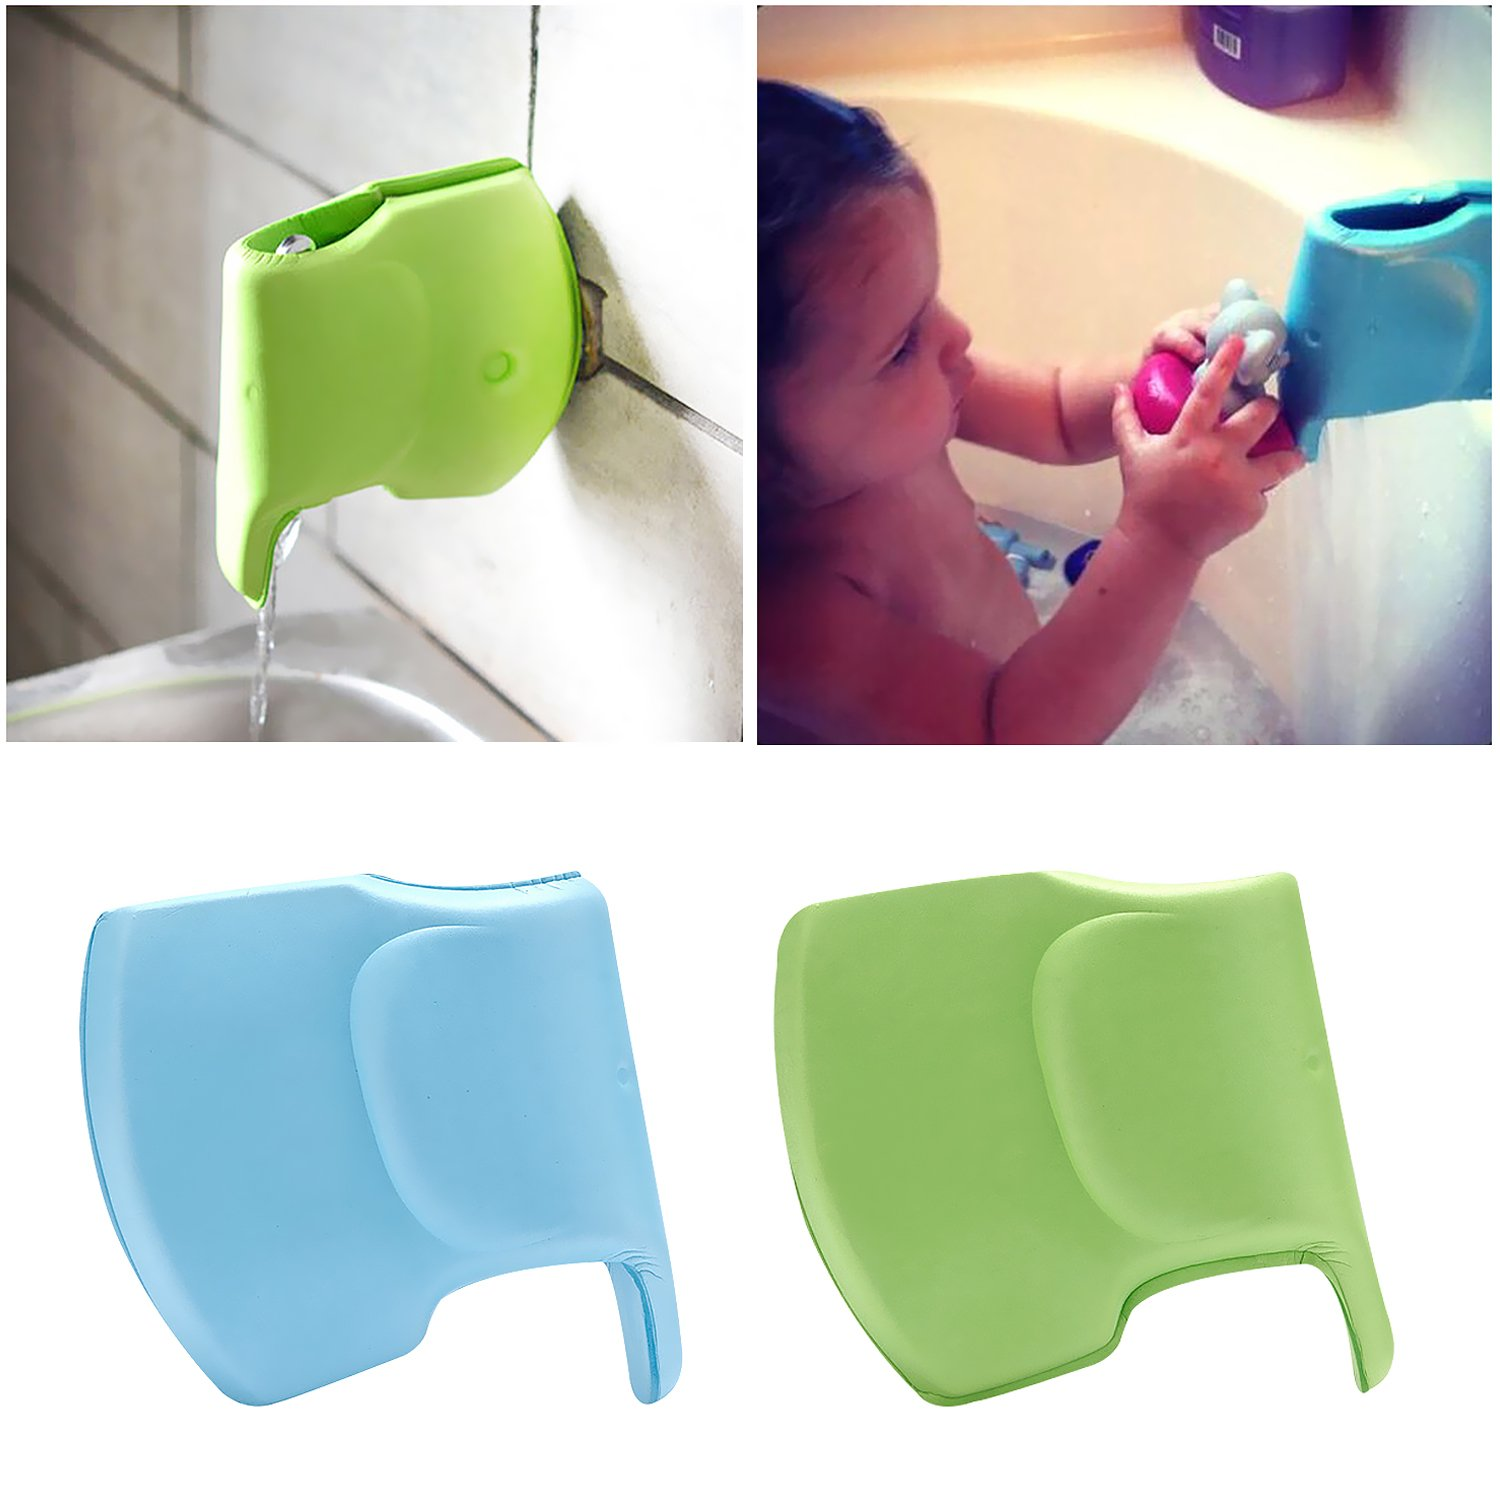 2 Pack Bath Spout Faucet Cover for Baby Safety, Tub Faucet Extender Protector for Baby, Elephant Shape Bathtub Cover Bath Toys for Kids, Soft and Flexible Faucet Cover NewCool 001-ELE-1